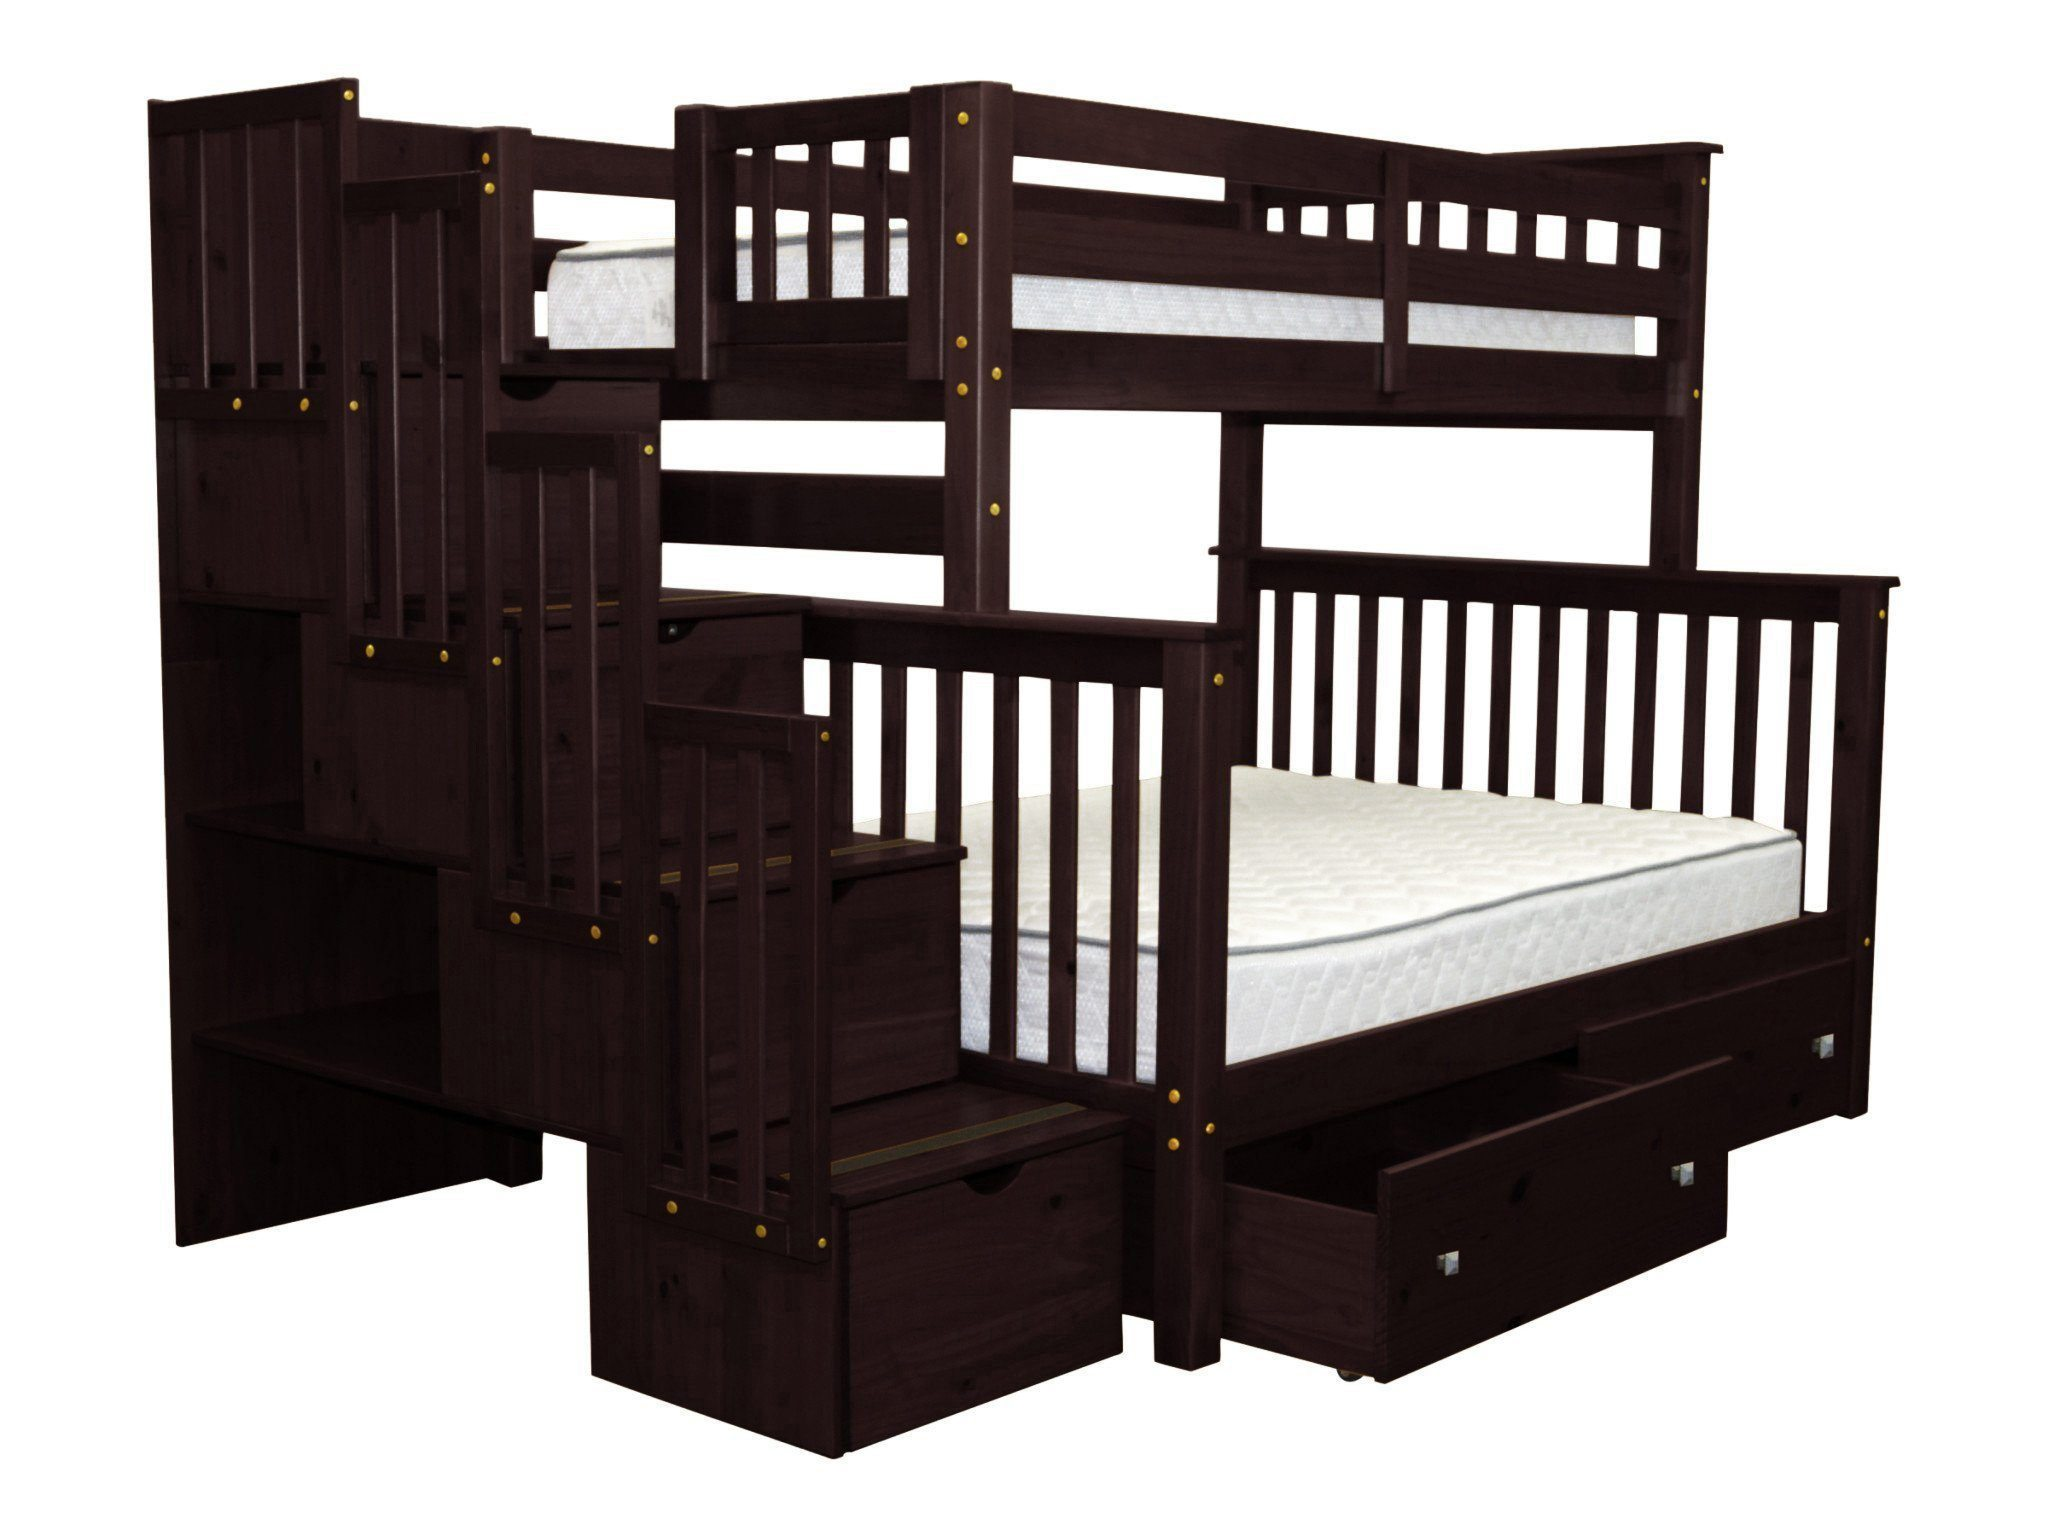 Bedz King Stairway Bunk Beds Twin Over Full With 4 Drawers In The Steps And 2 Under Bed Drawers Cappuccino Walmart Com Walmart Com